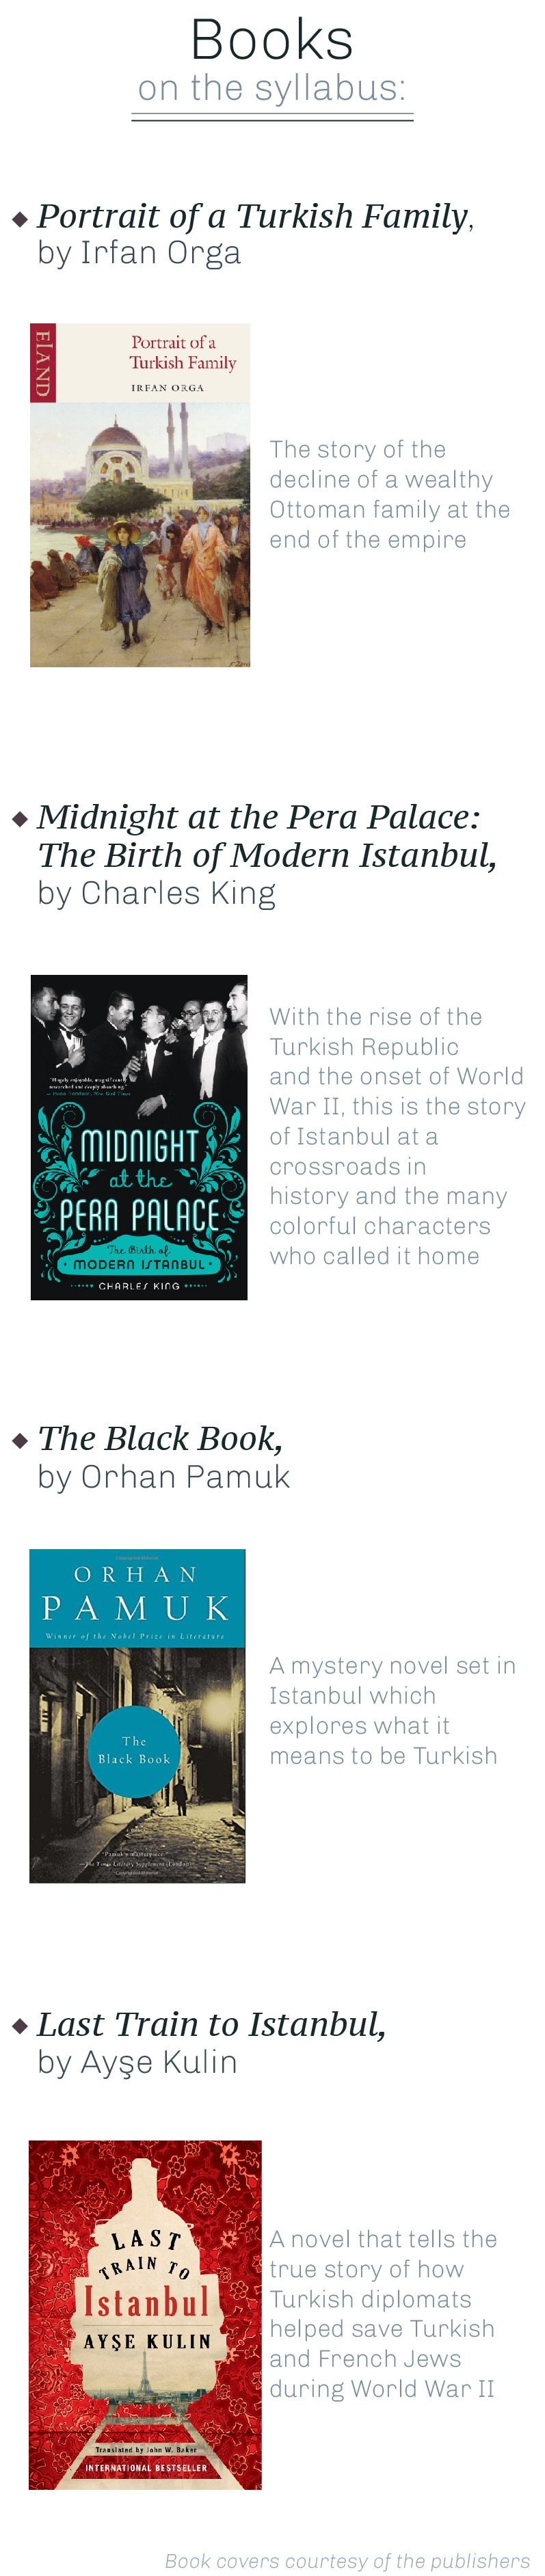 Sidebar showing four book covers, with descriptions (Photos courtesy of the publishers)